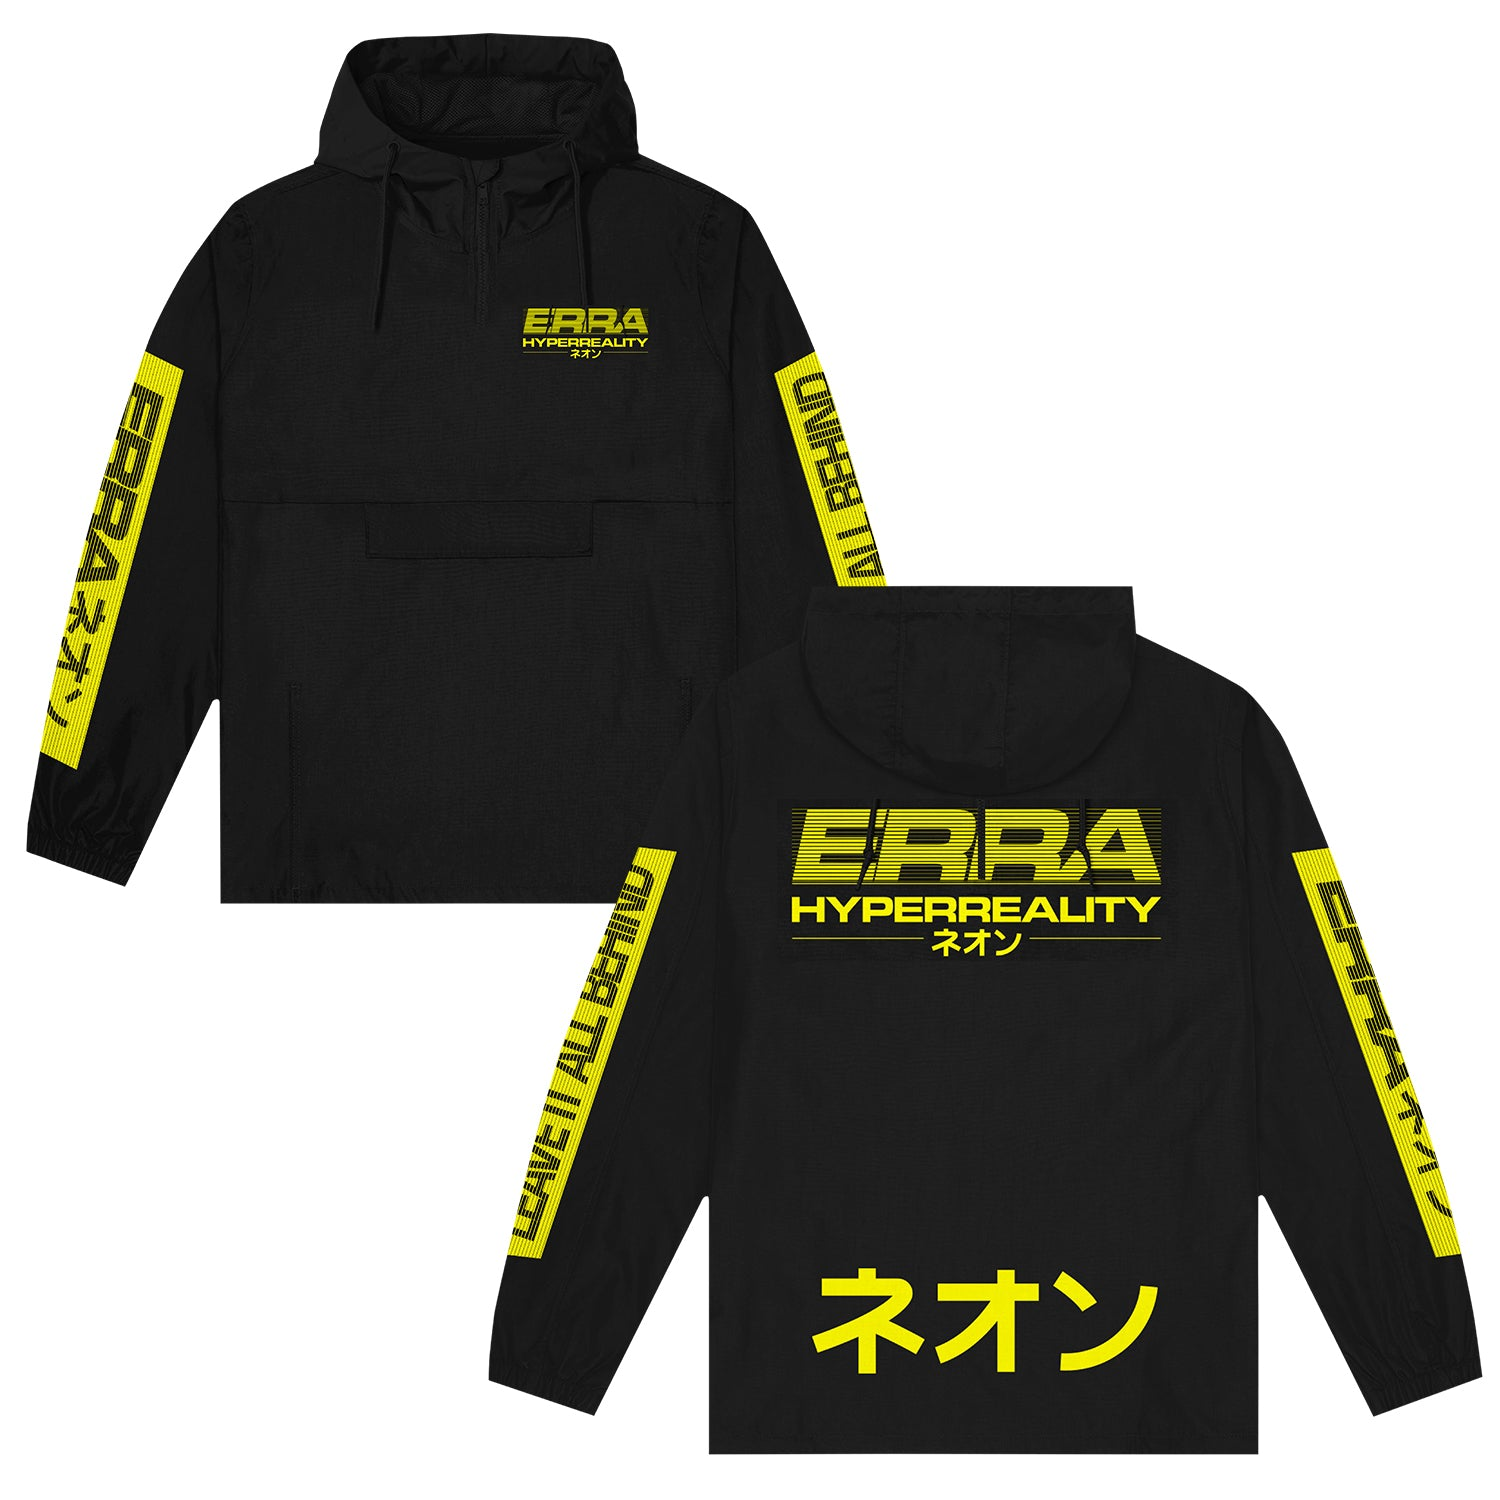 Hyperreality Black Pullover Windbreaker